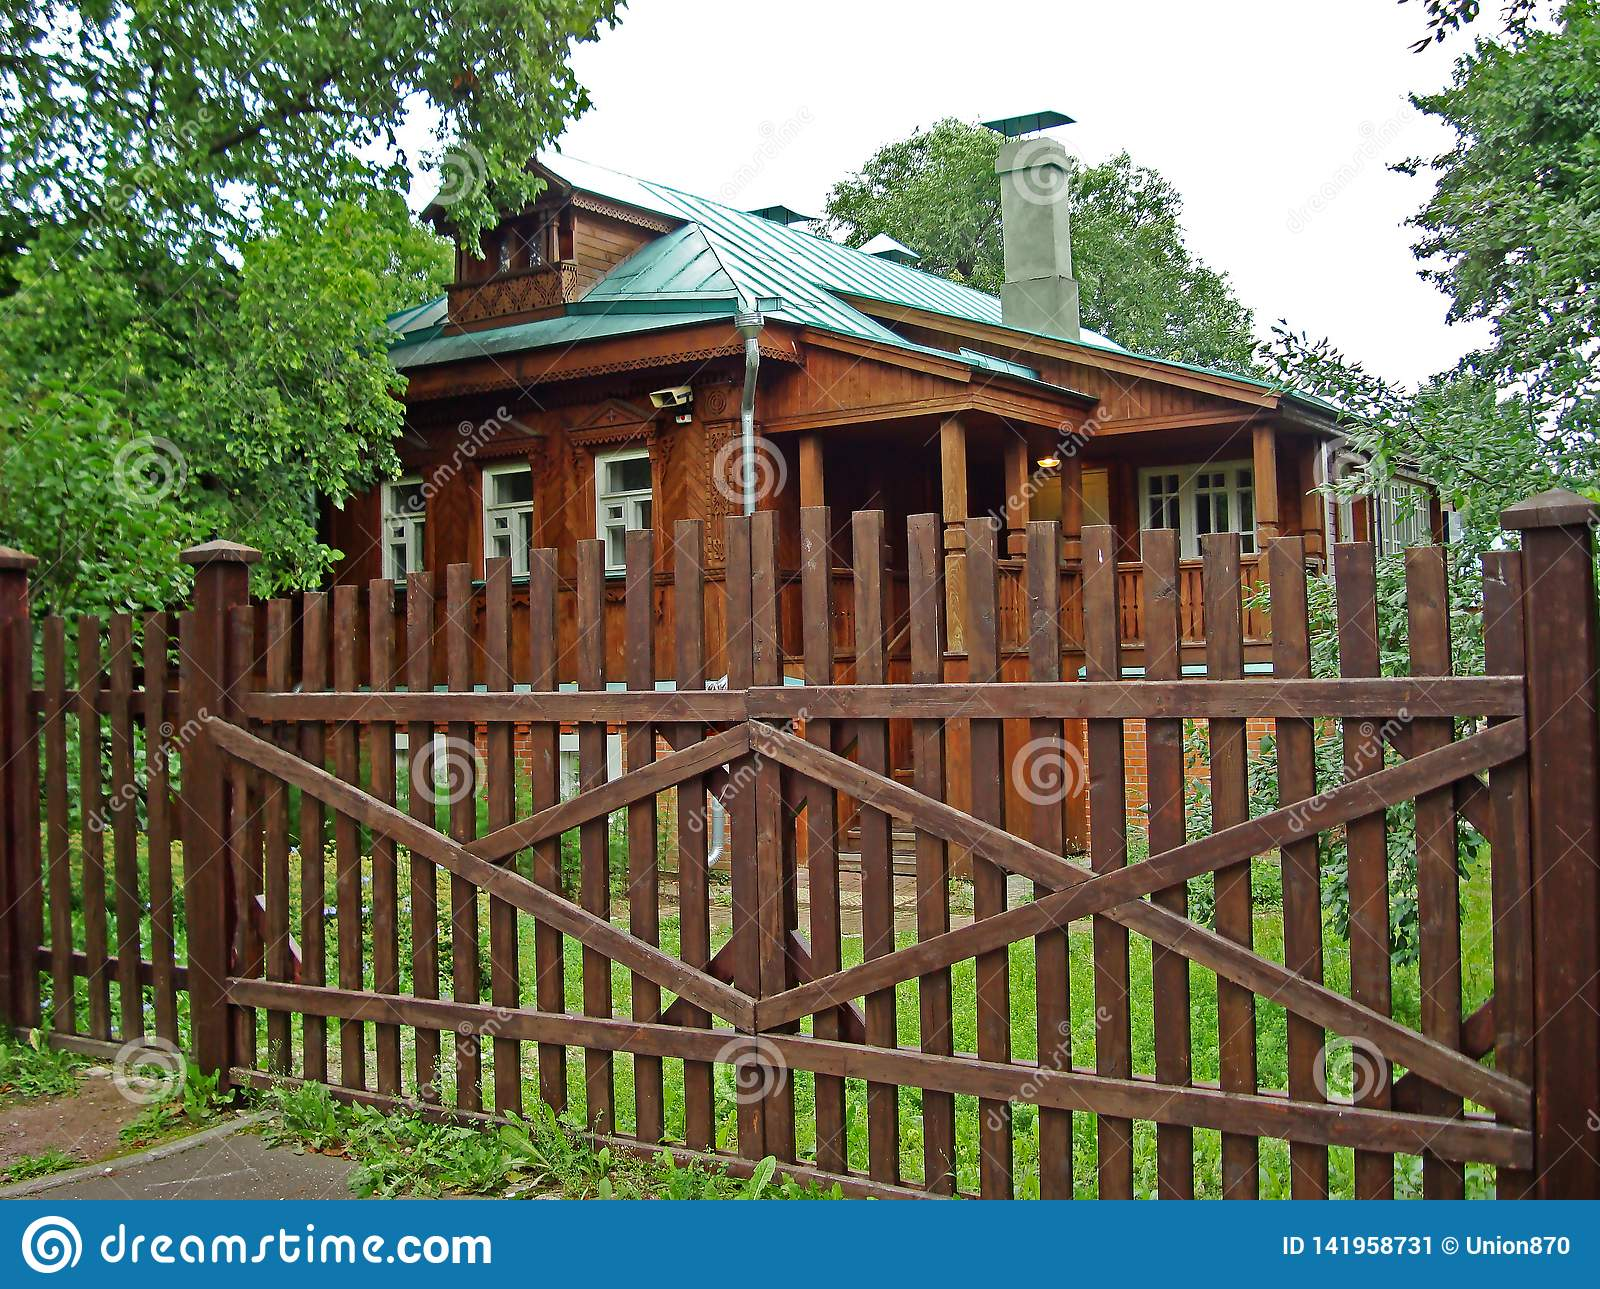 Old wooden house with green roof and brown fence